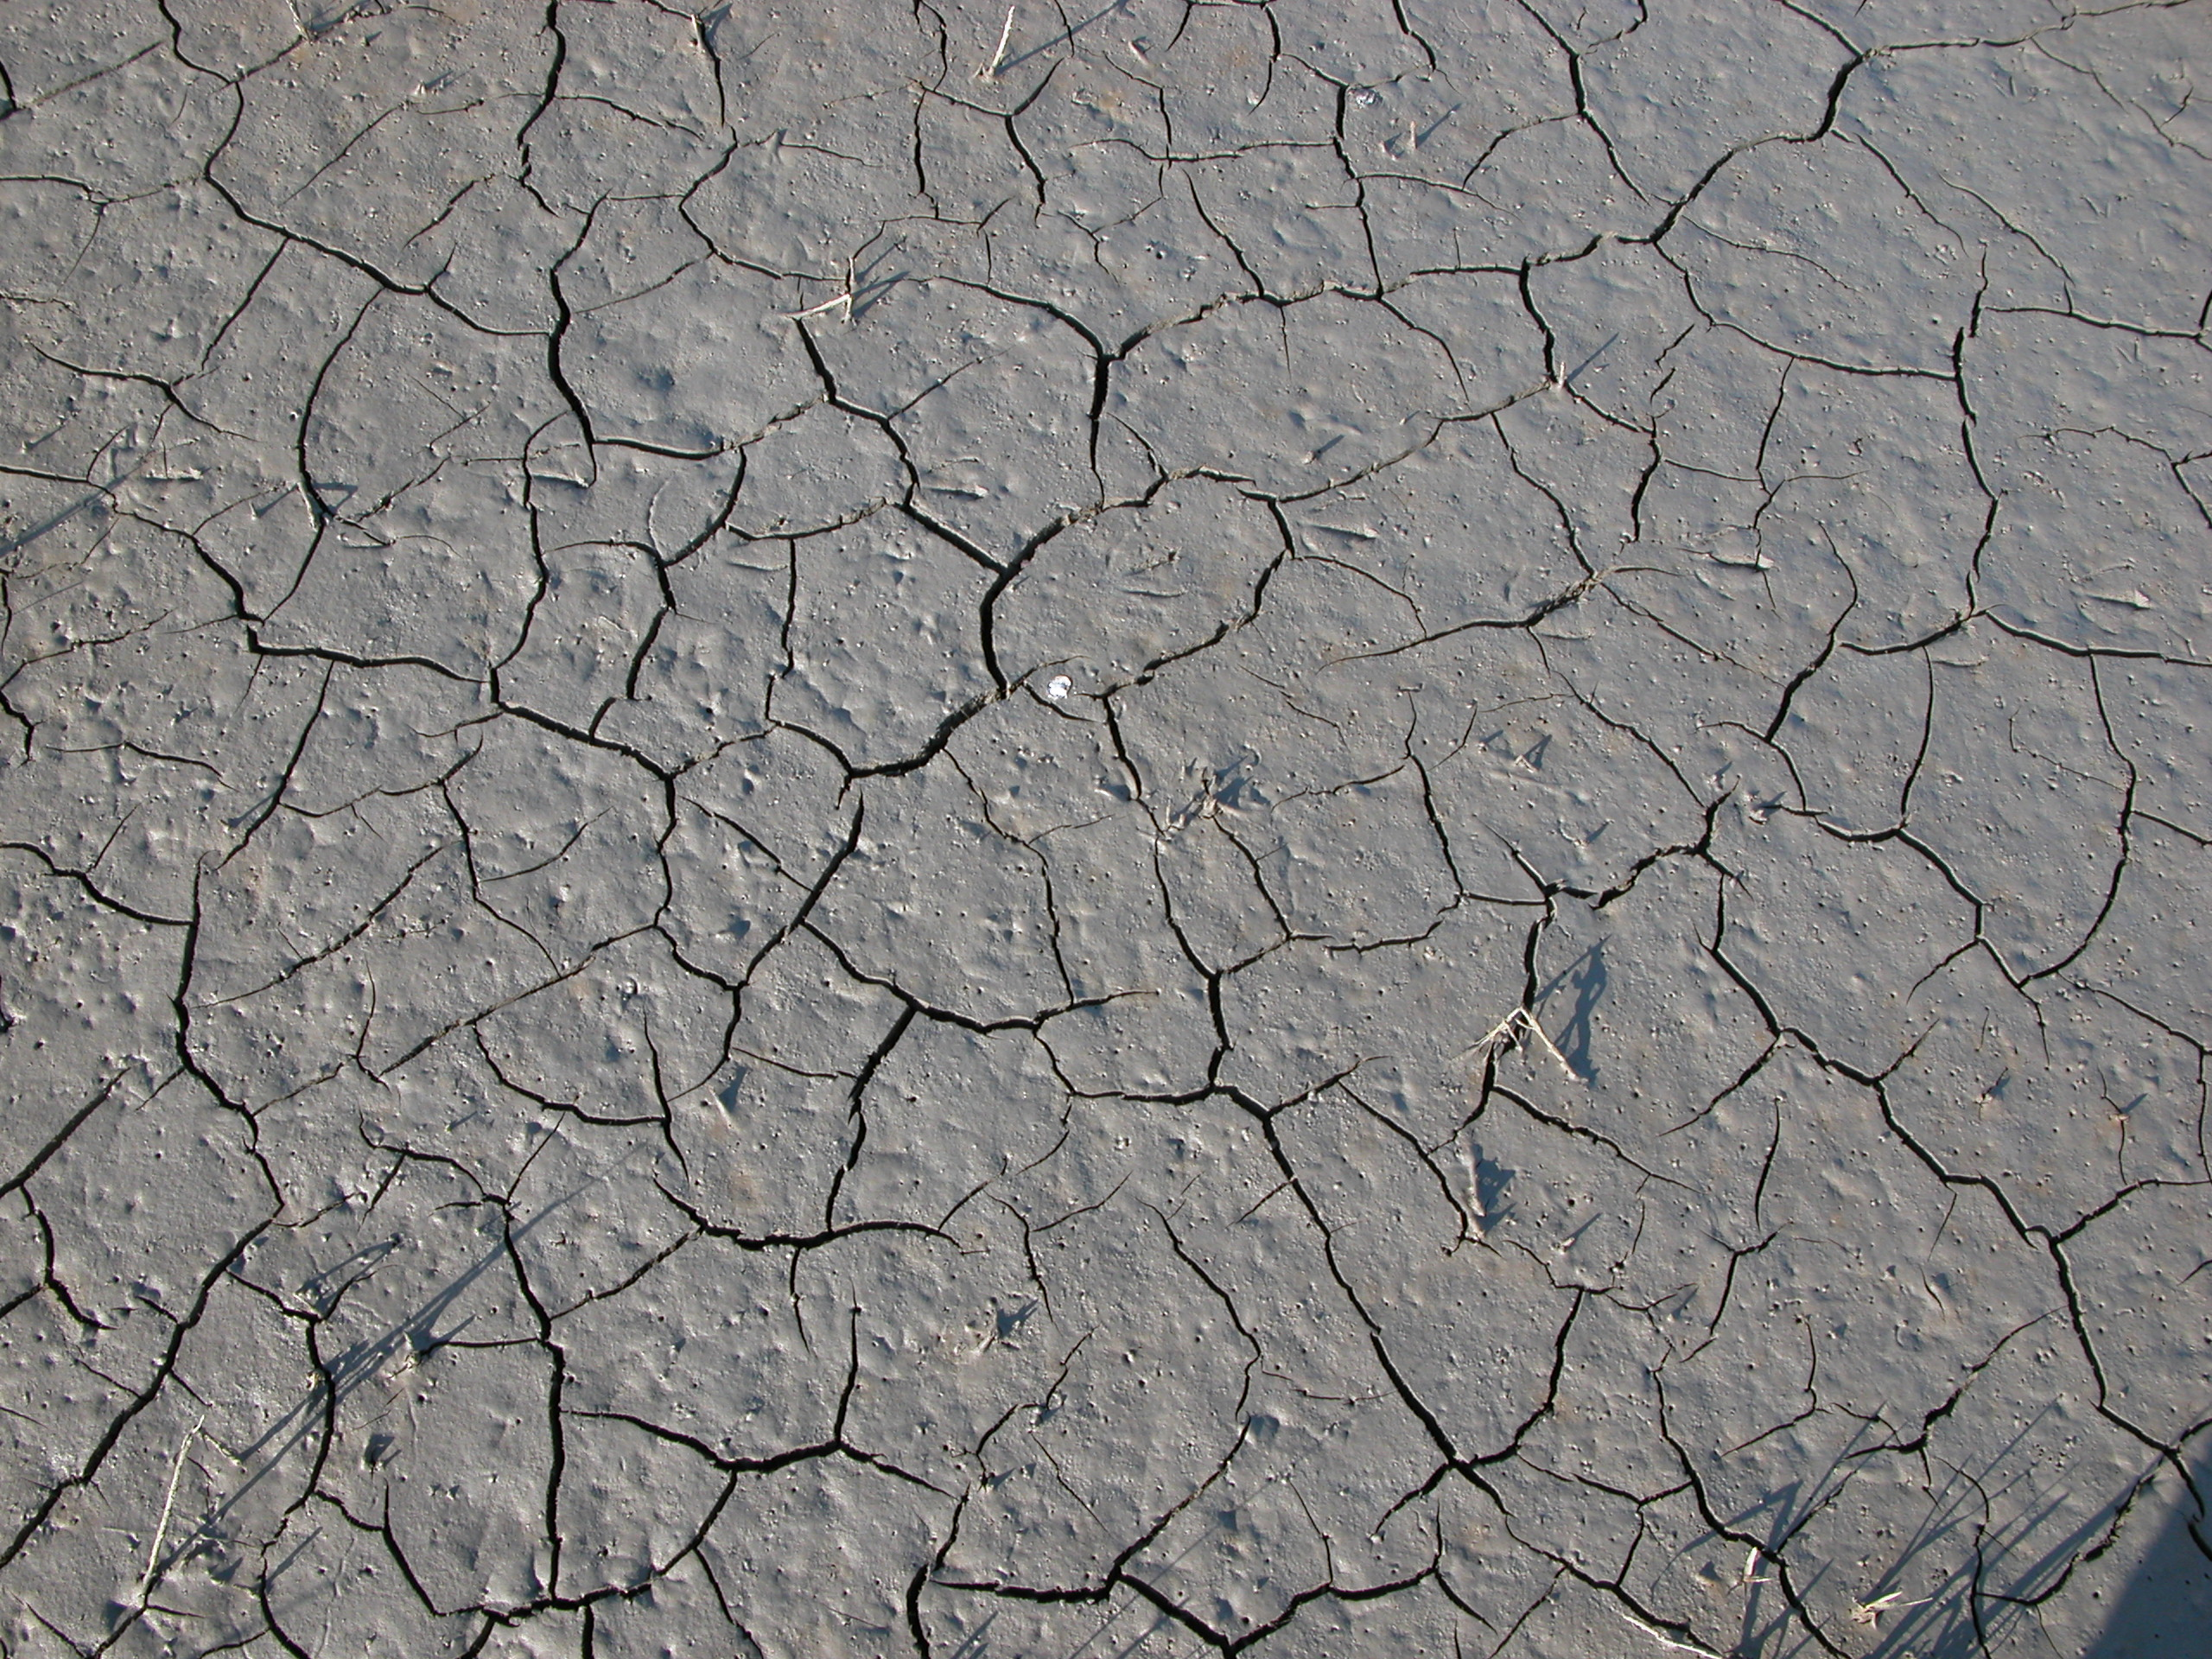 Image after photo cracked dry dried earth grey soil for Earth or soil